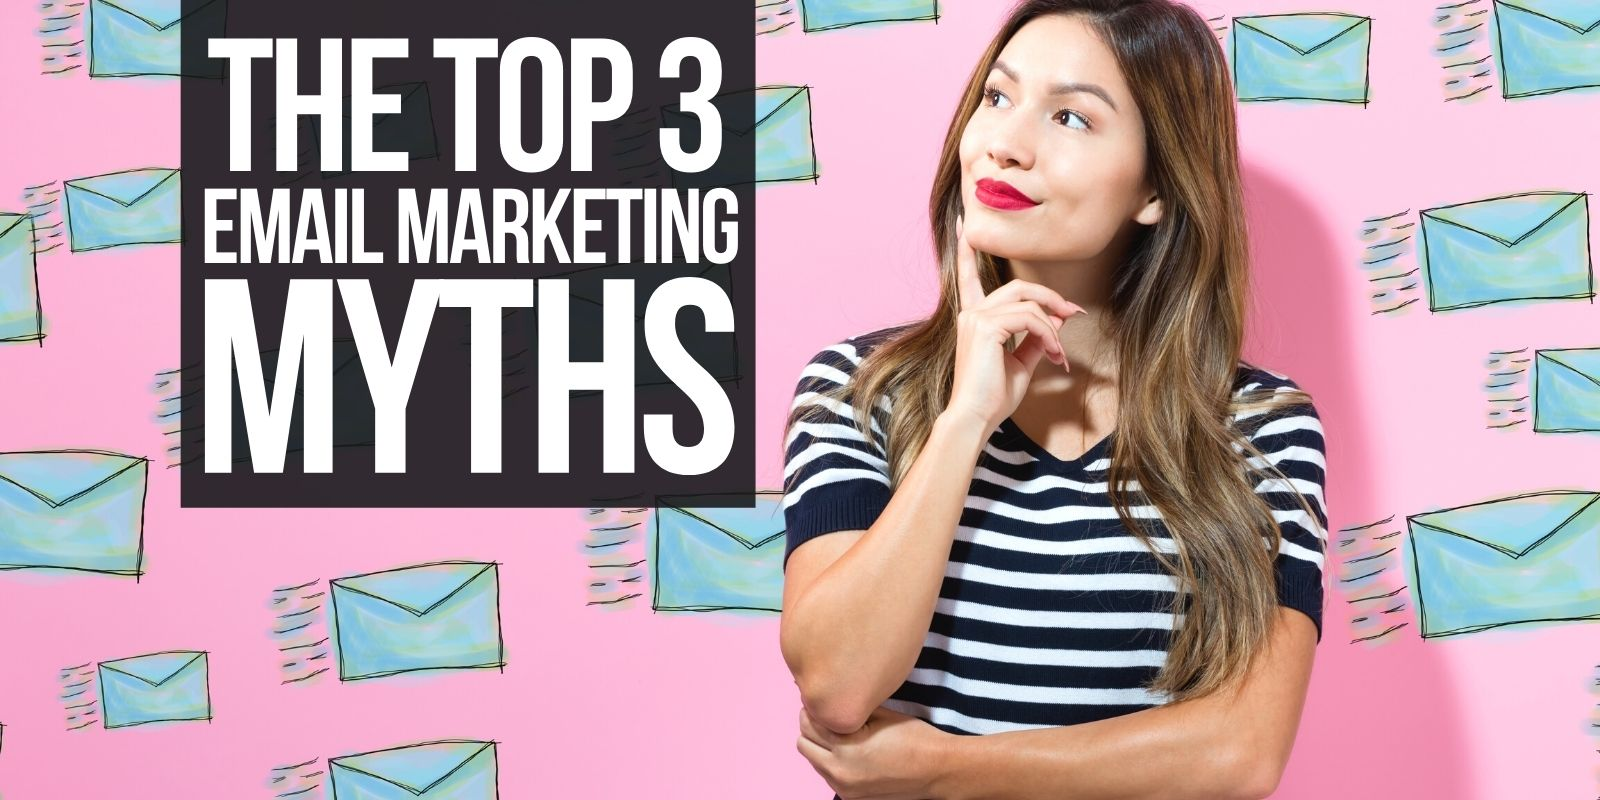 Top 3 Email Marketing Myths